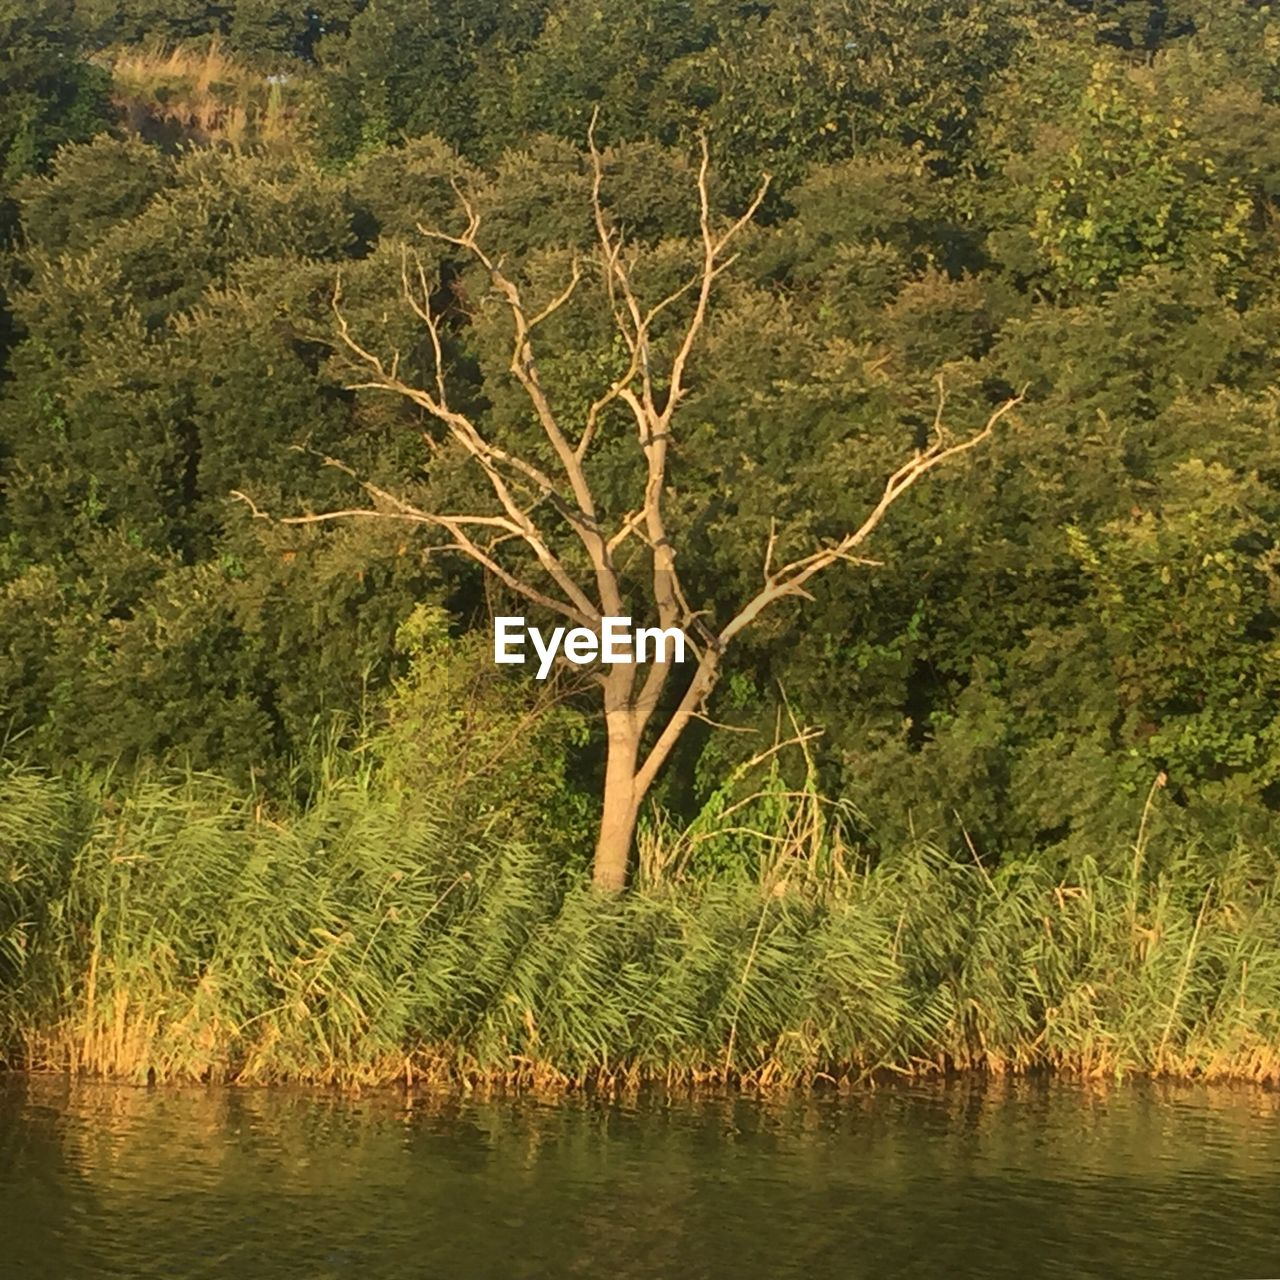 plant, tree, water, nature, tranquility, growth, beauty in nature, lake, no people, scenics - nature, forest, non-urban scene, day, outdoors, tranquil scene, land, green color, waterfront